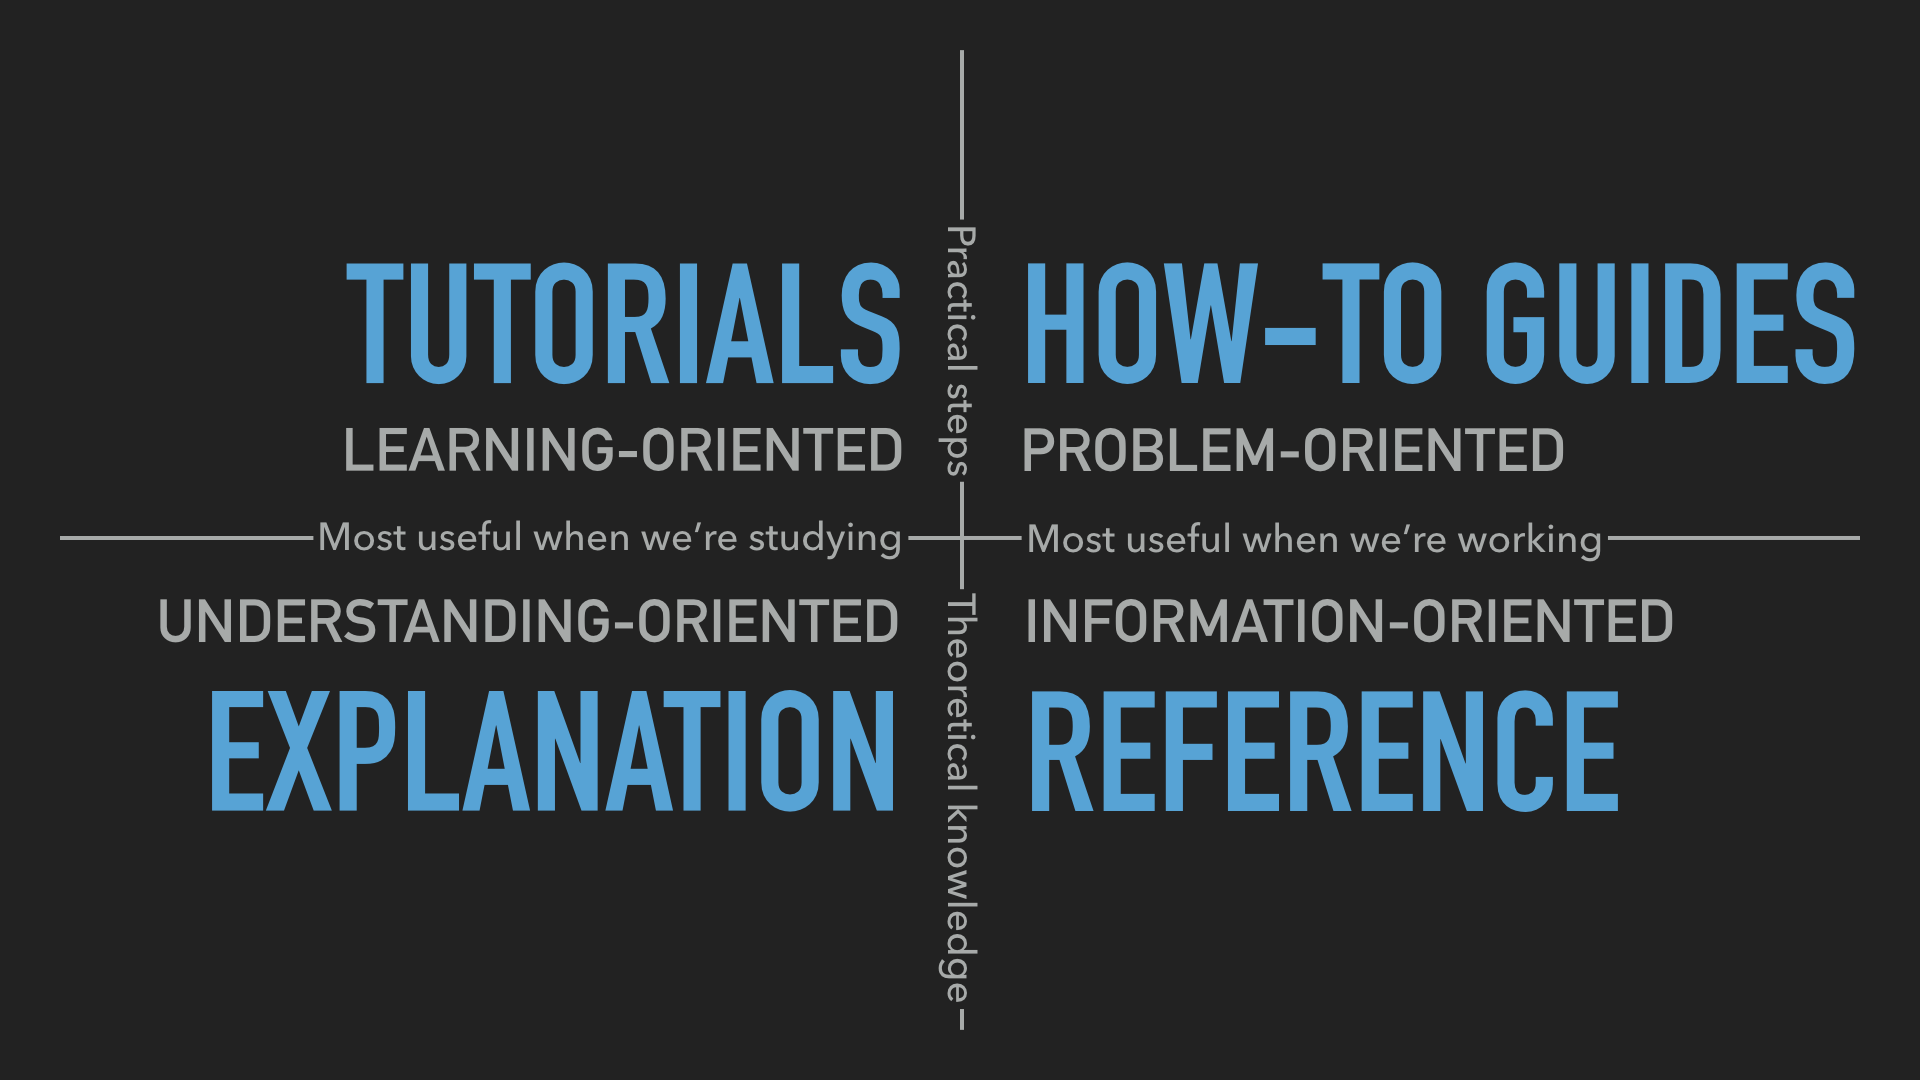 tutorials vs how-to vs explanation vs reference, all different types of documentation